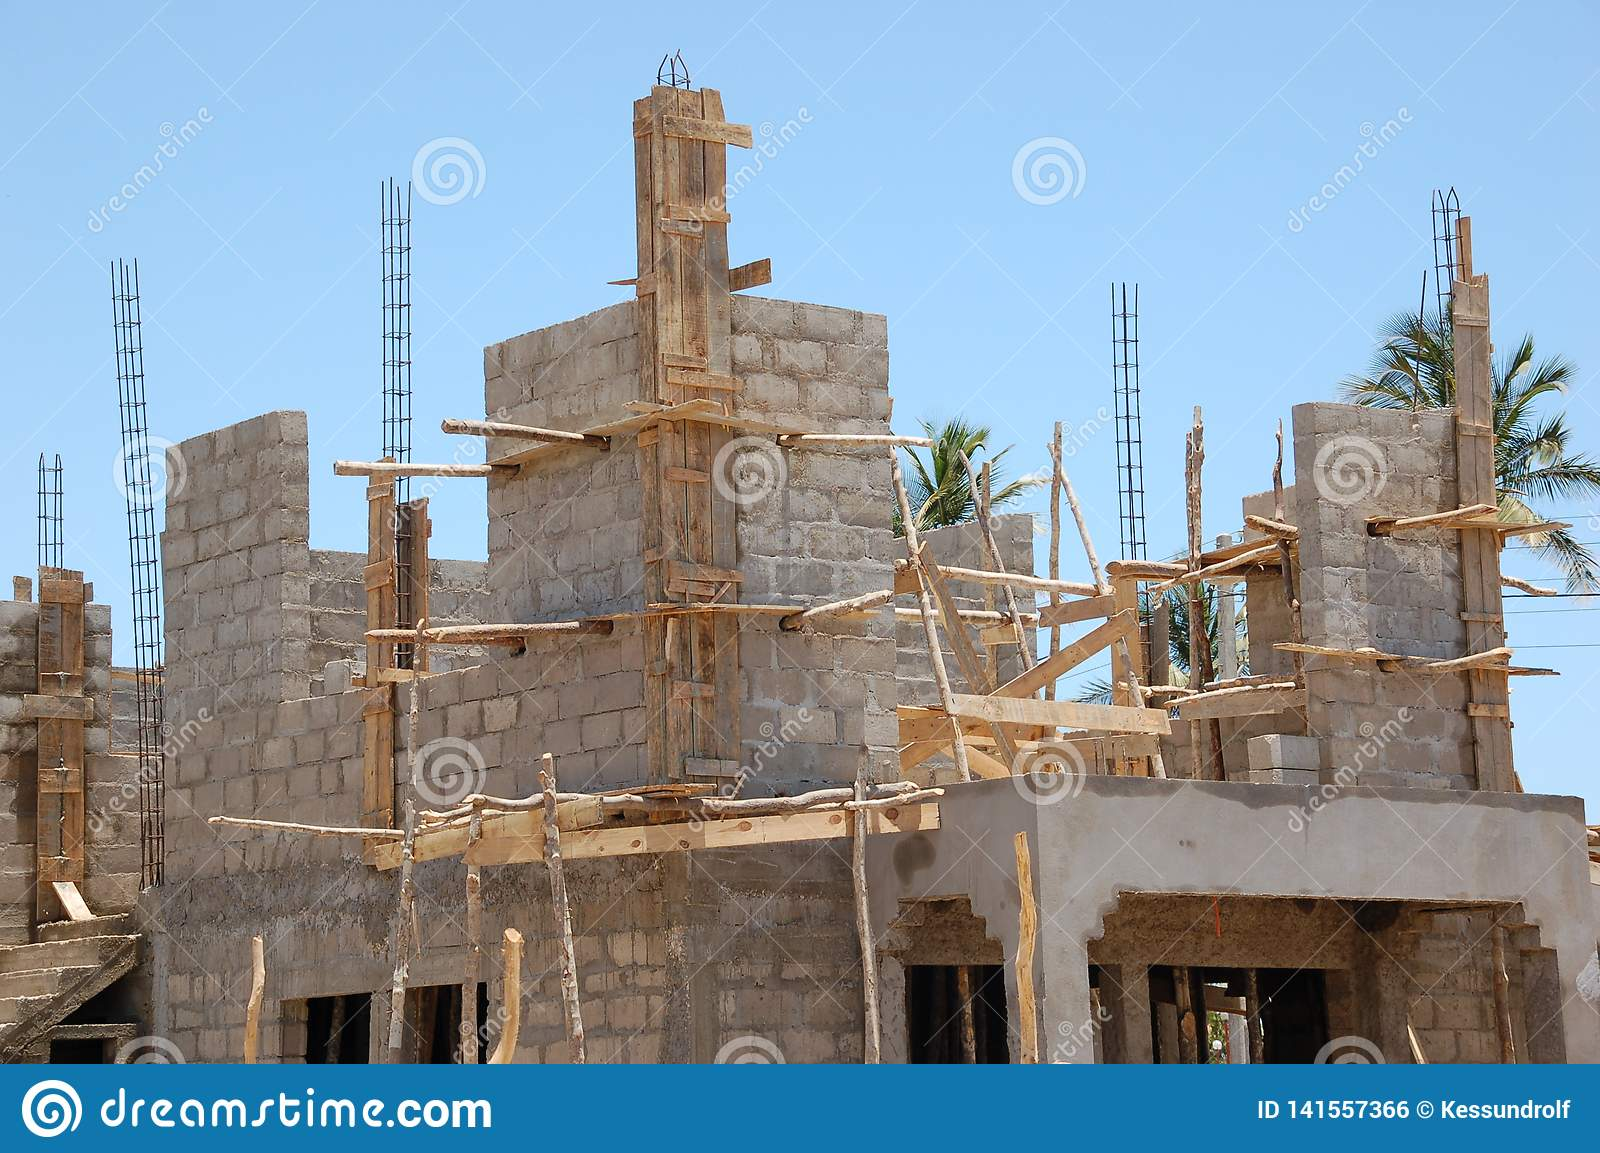 Building site with wooden framework and blue sky